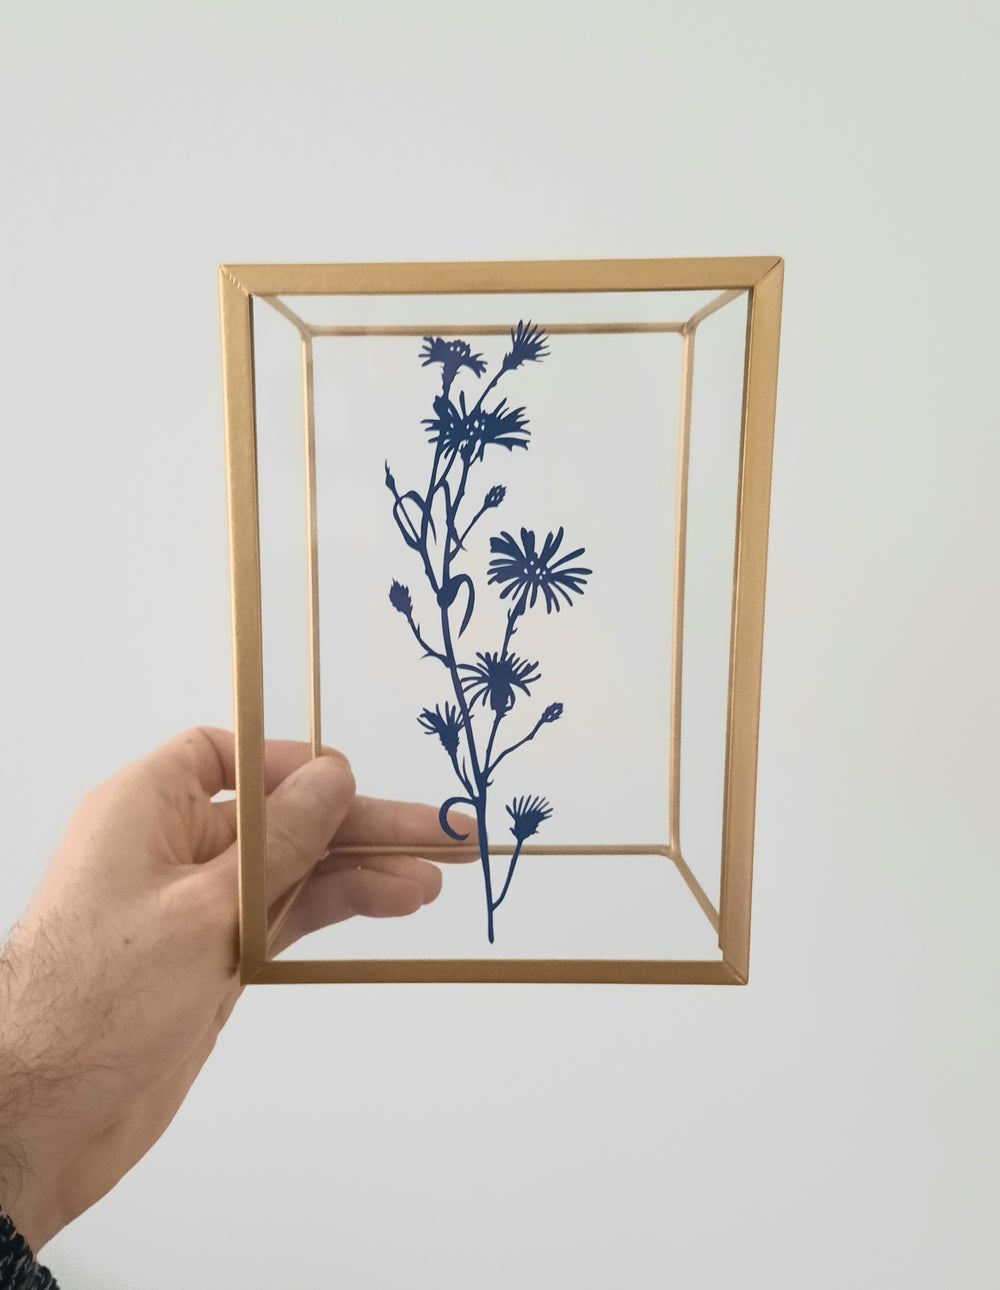 Image of Framed Hand Cut Flowers